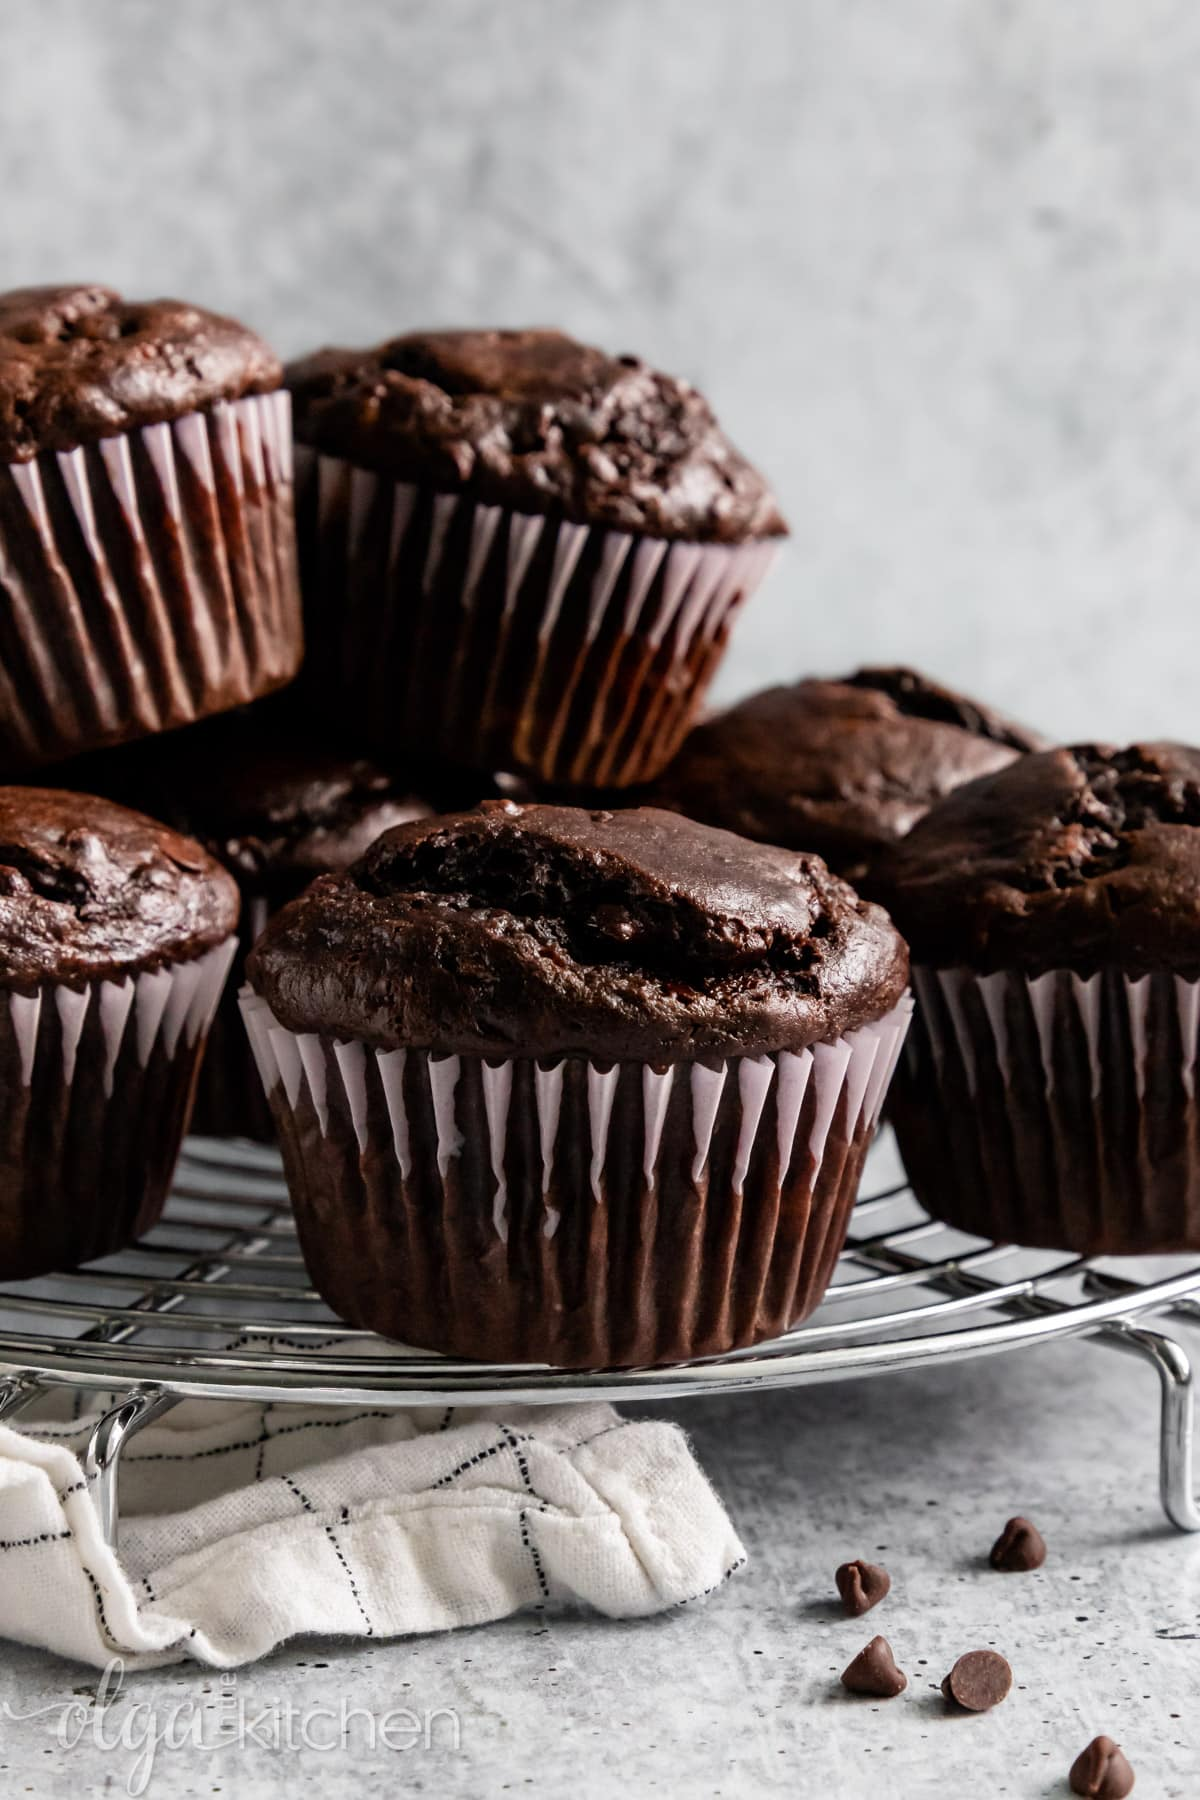 These Double Chocolate Banana Muffins are so easy to make, bursting with rich chocolate flavor and loaded with chocolate chips. They are soft and perfectly moist. #olgainthekitchen #bananamuffins #chocolatemuffins #muffins #chocolatebananamuffins #breakfast